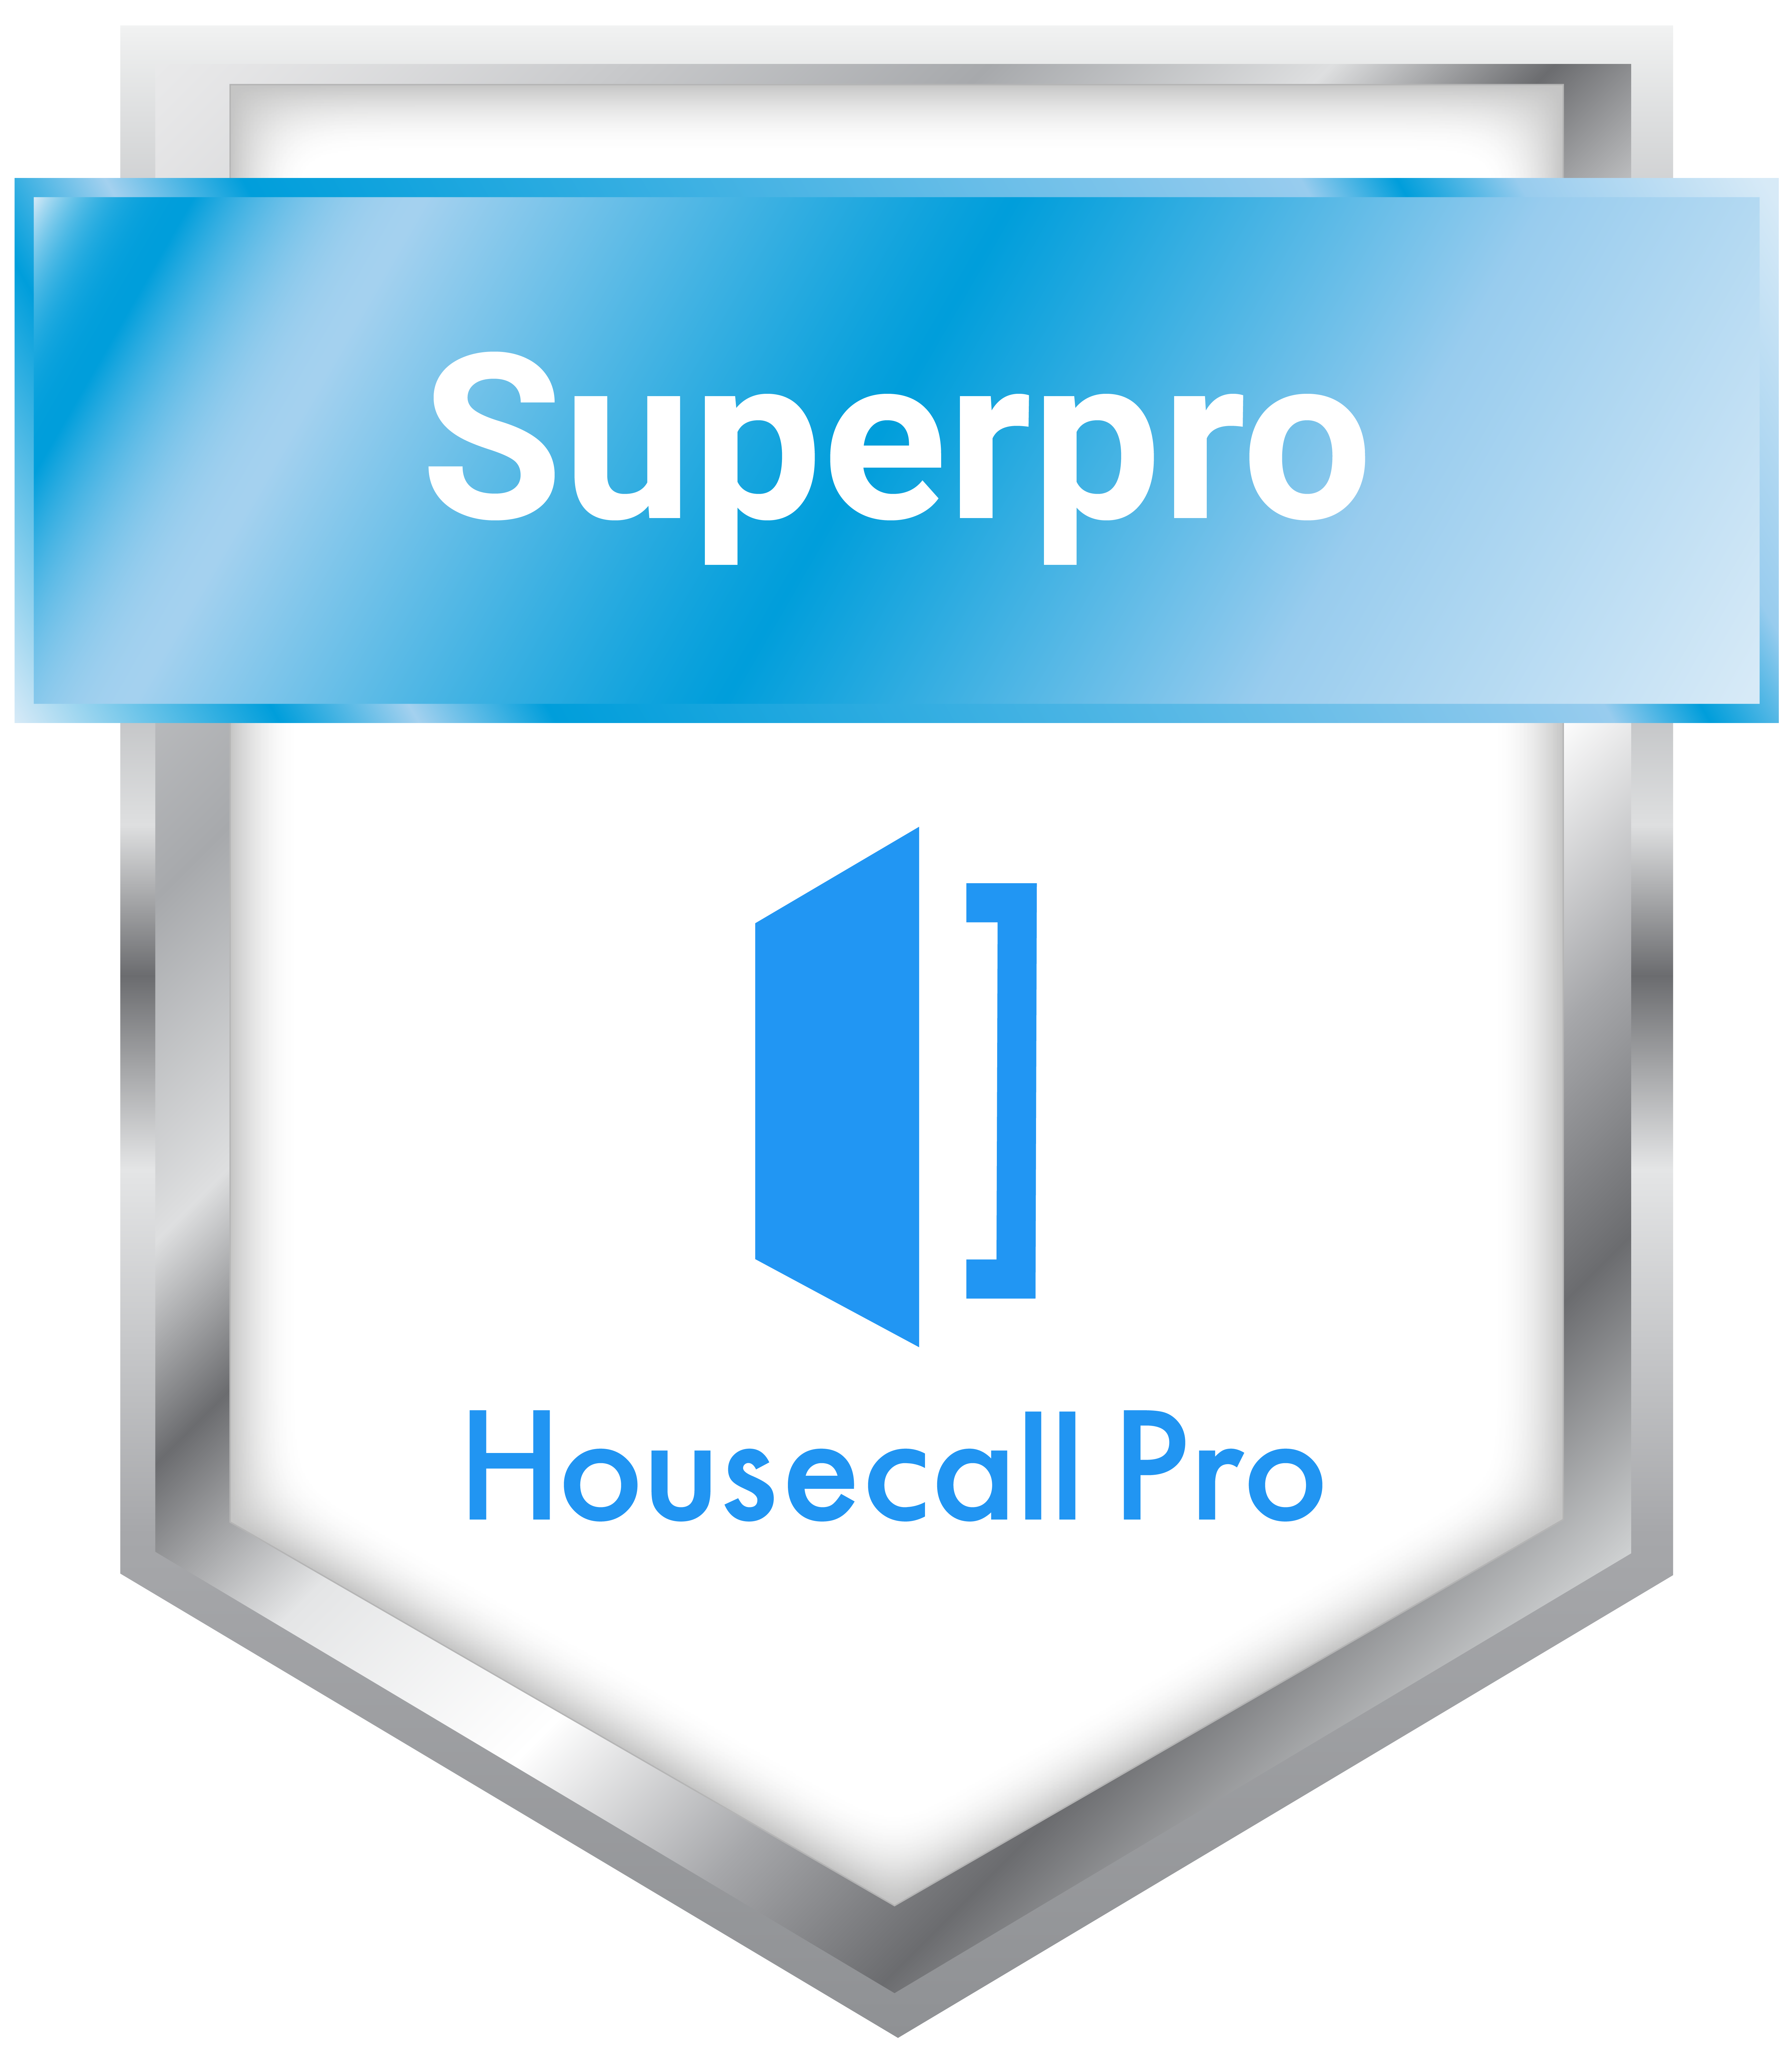 direct plumbing solutions is a housecall pro superpro user